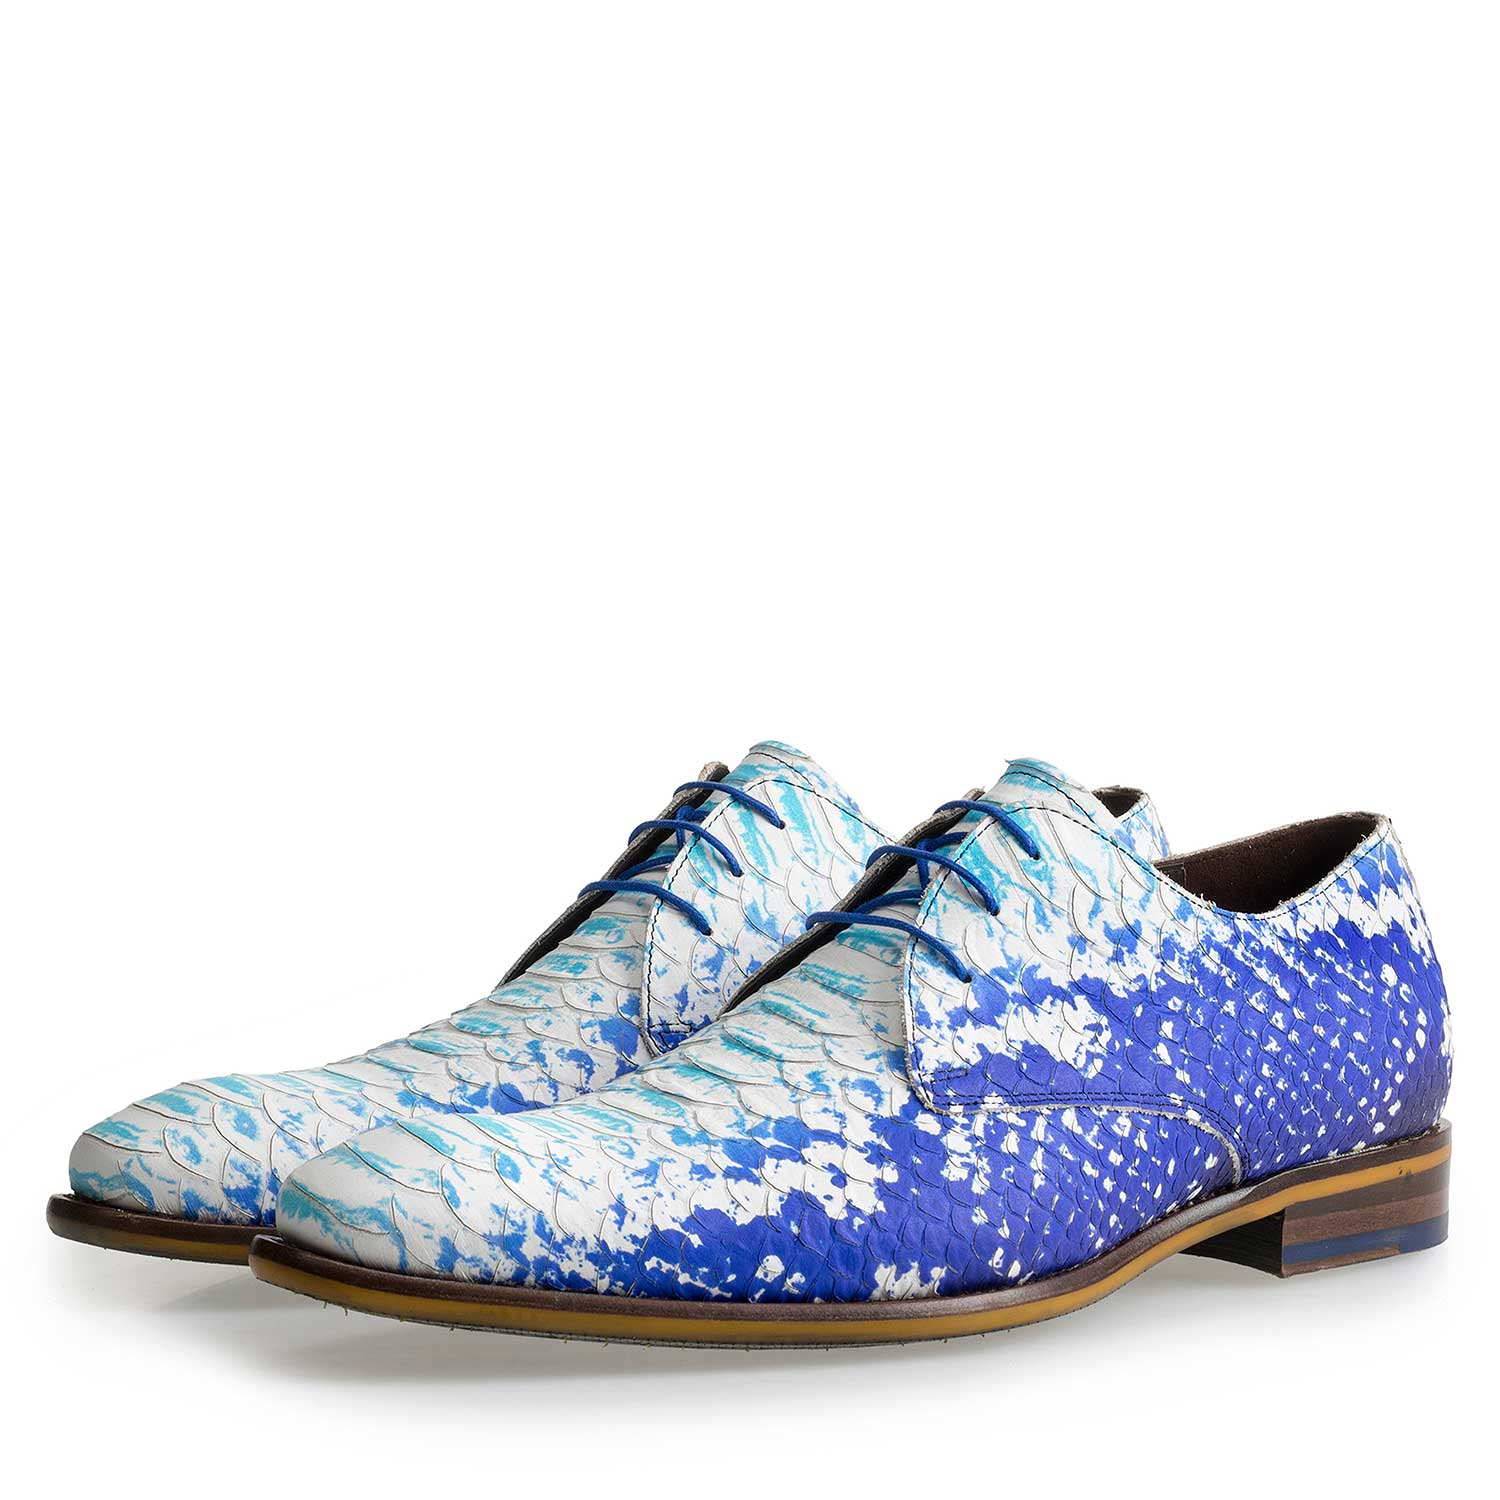 14109/00 - Blue leather lace-shoe with a snake print